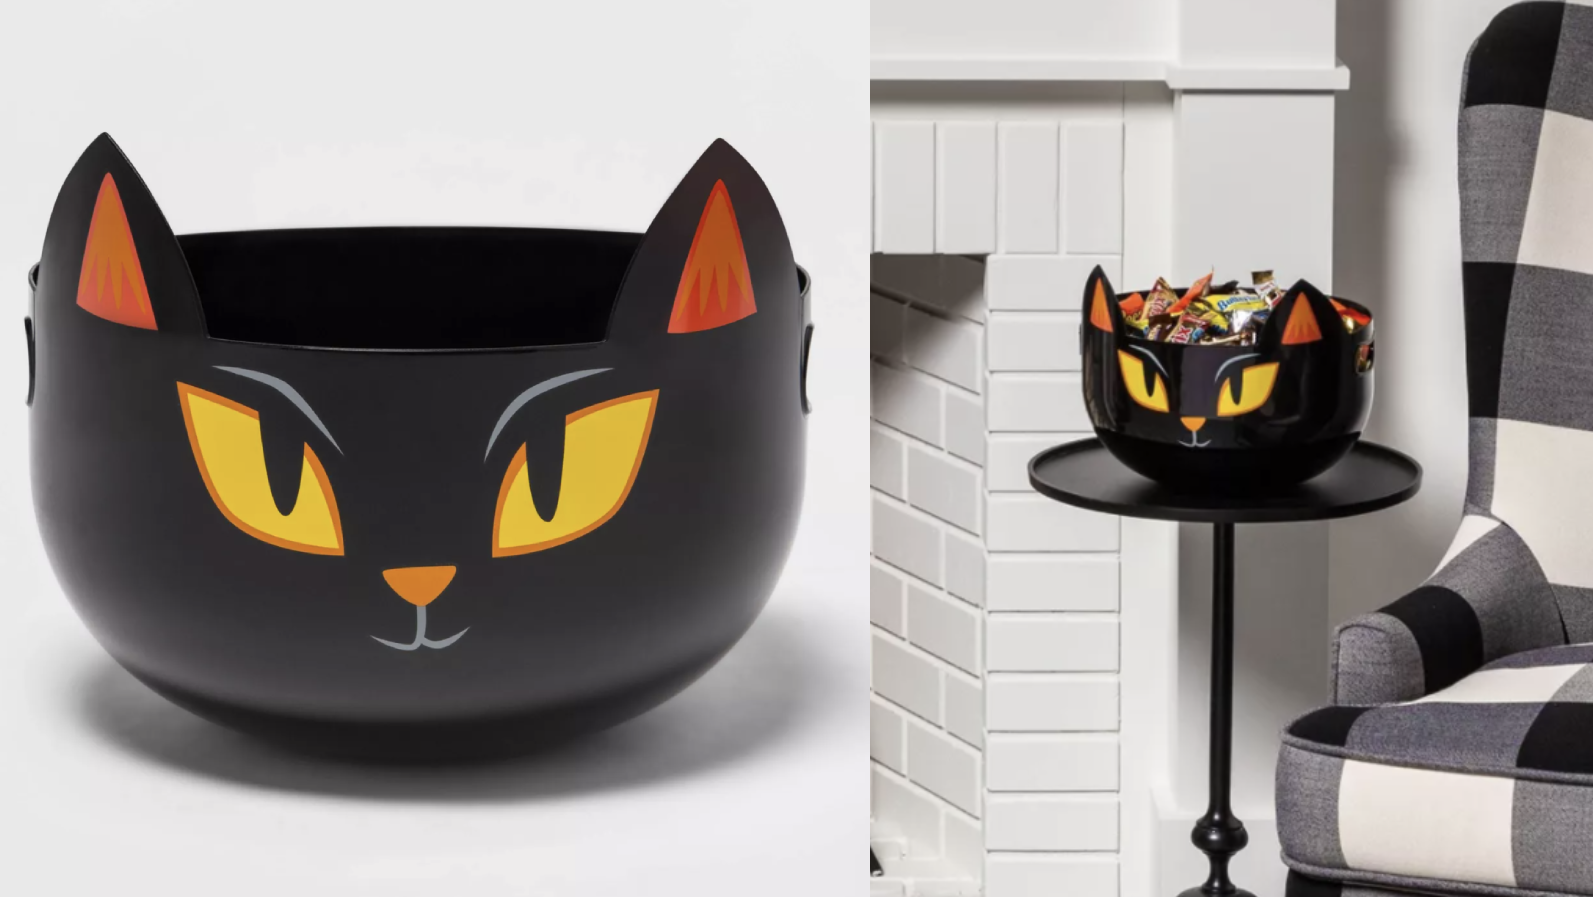 What a purr-fect treat holder.